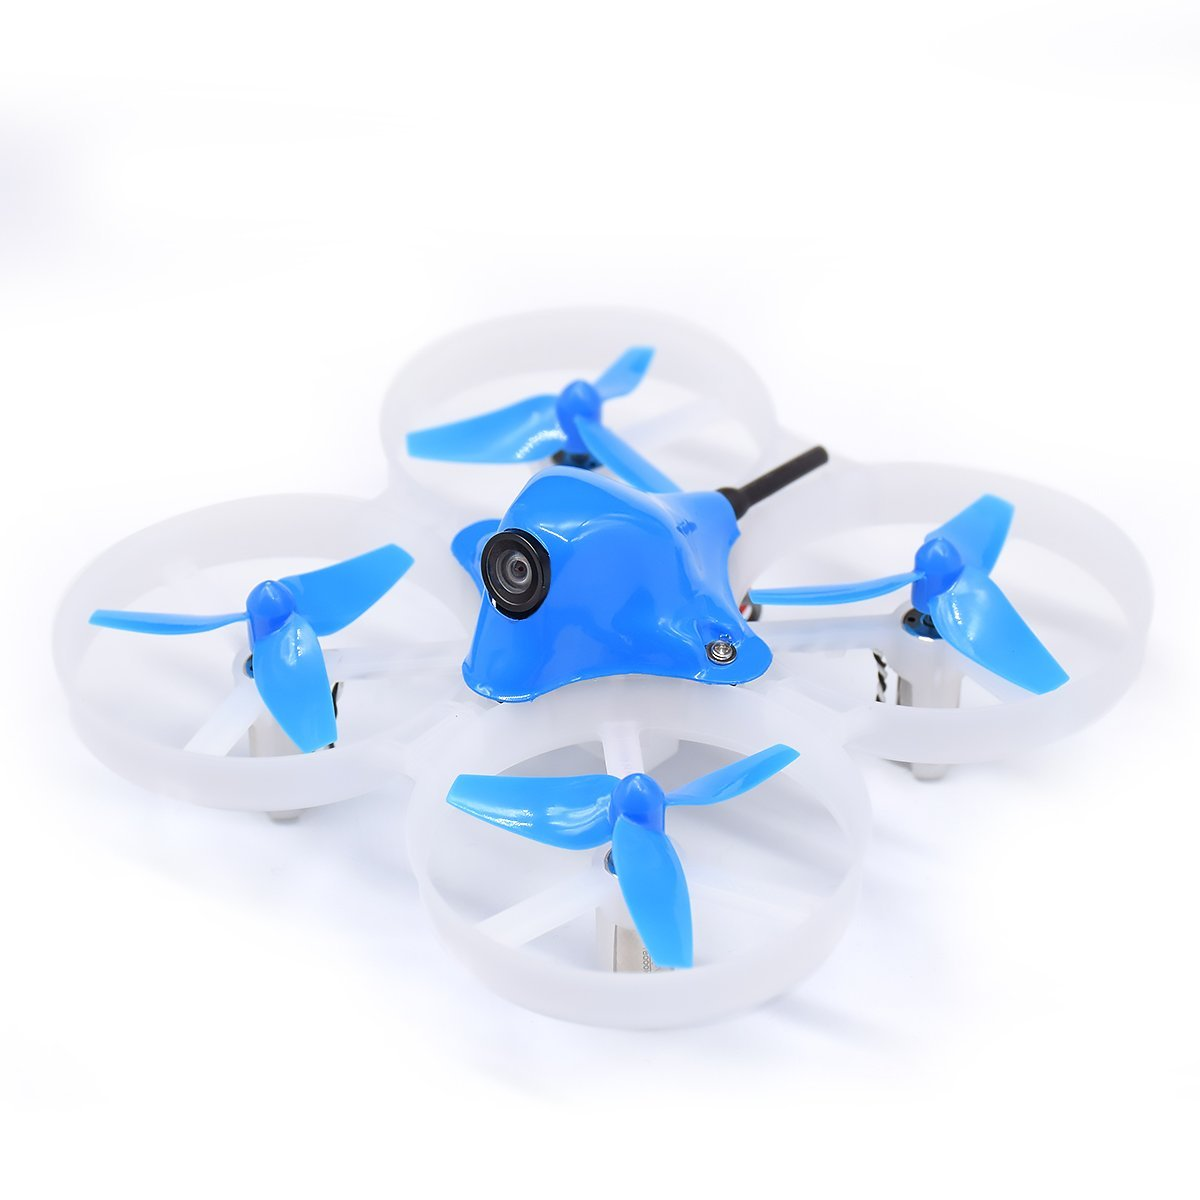 Beta85 BNF Micro Whoop Quadcopter OSD Frsky Receiver with 8.5x20 Motor beta 58a